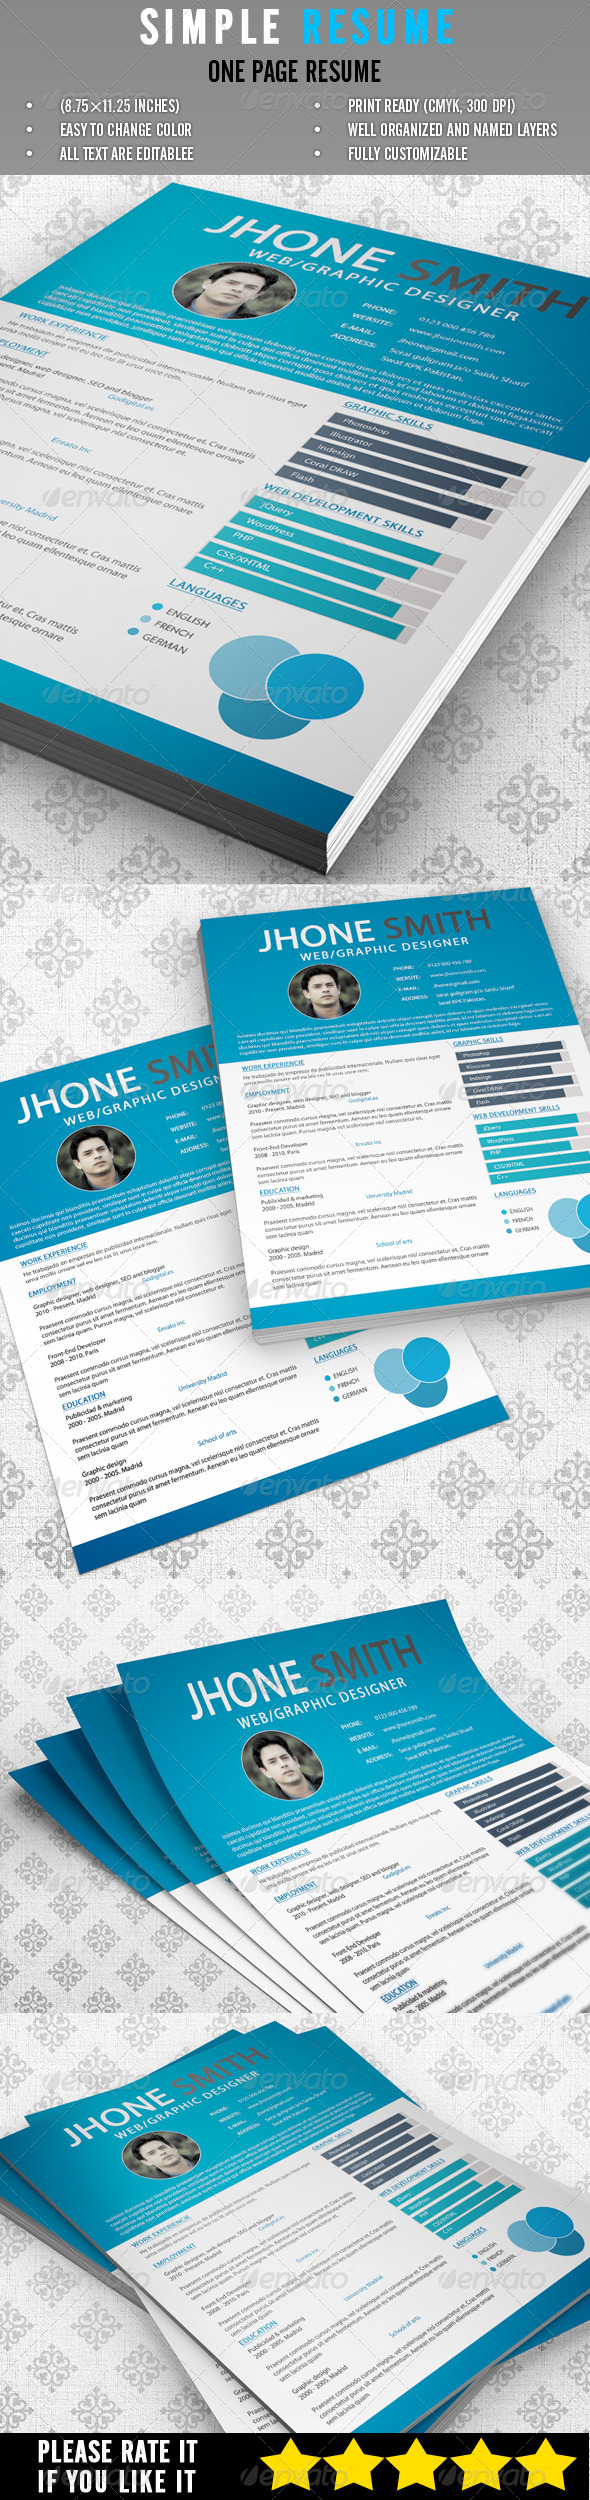 GraphicRiver Simple Resume 6784806